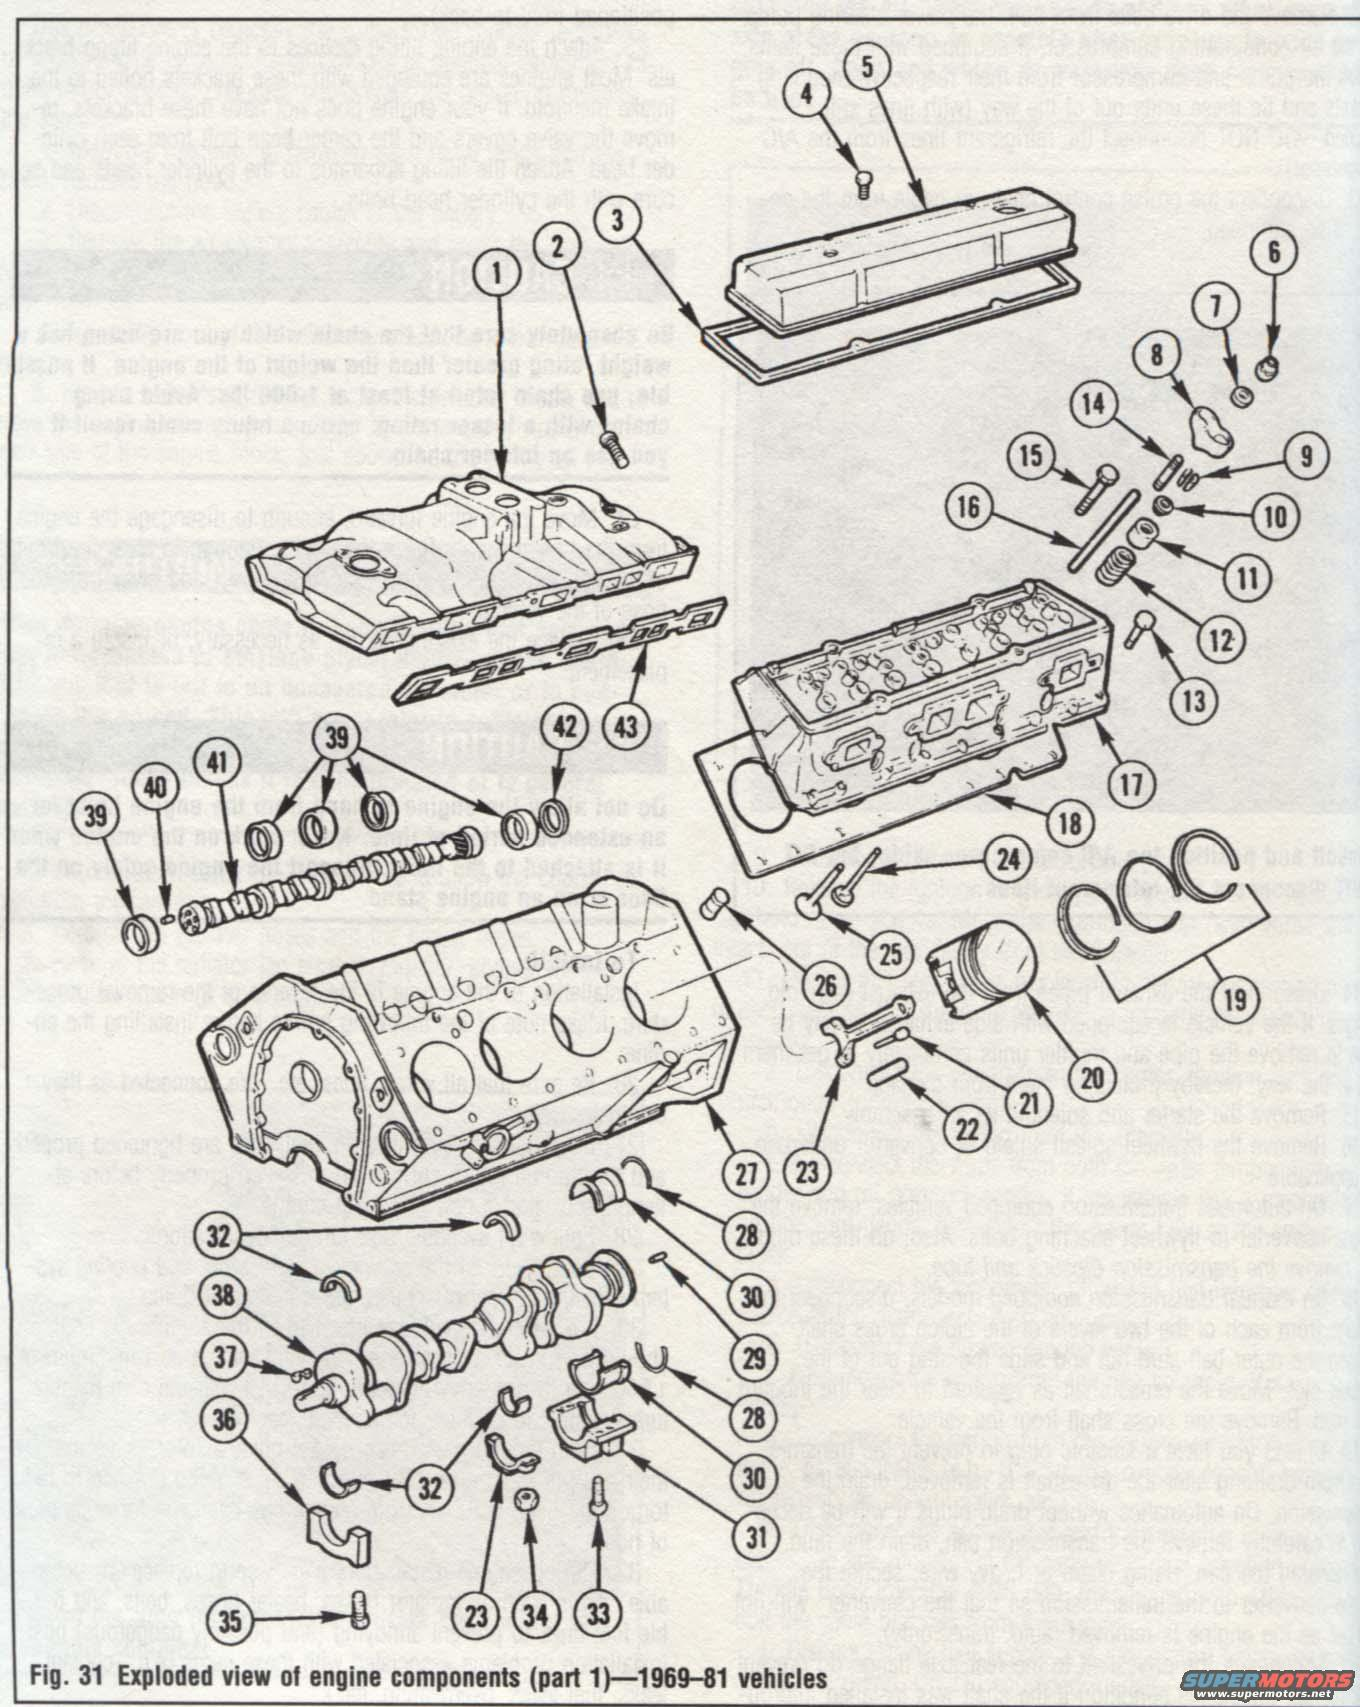 1977 Chevrolet Corvette Diagrams Picture Basic Engine Components Diagram Exploded View Of Part 1 2 Hits 2305 Posted On 21 08 Low Res